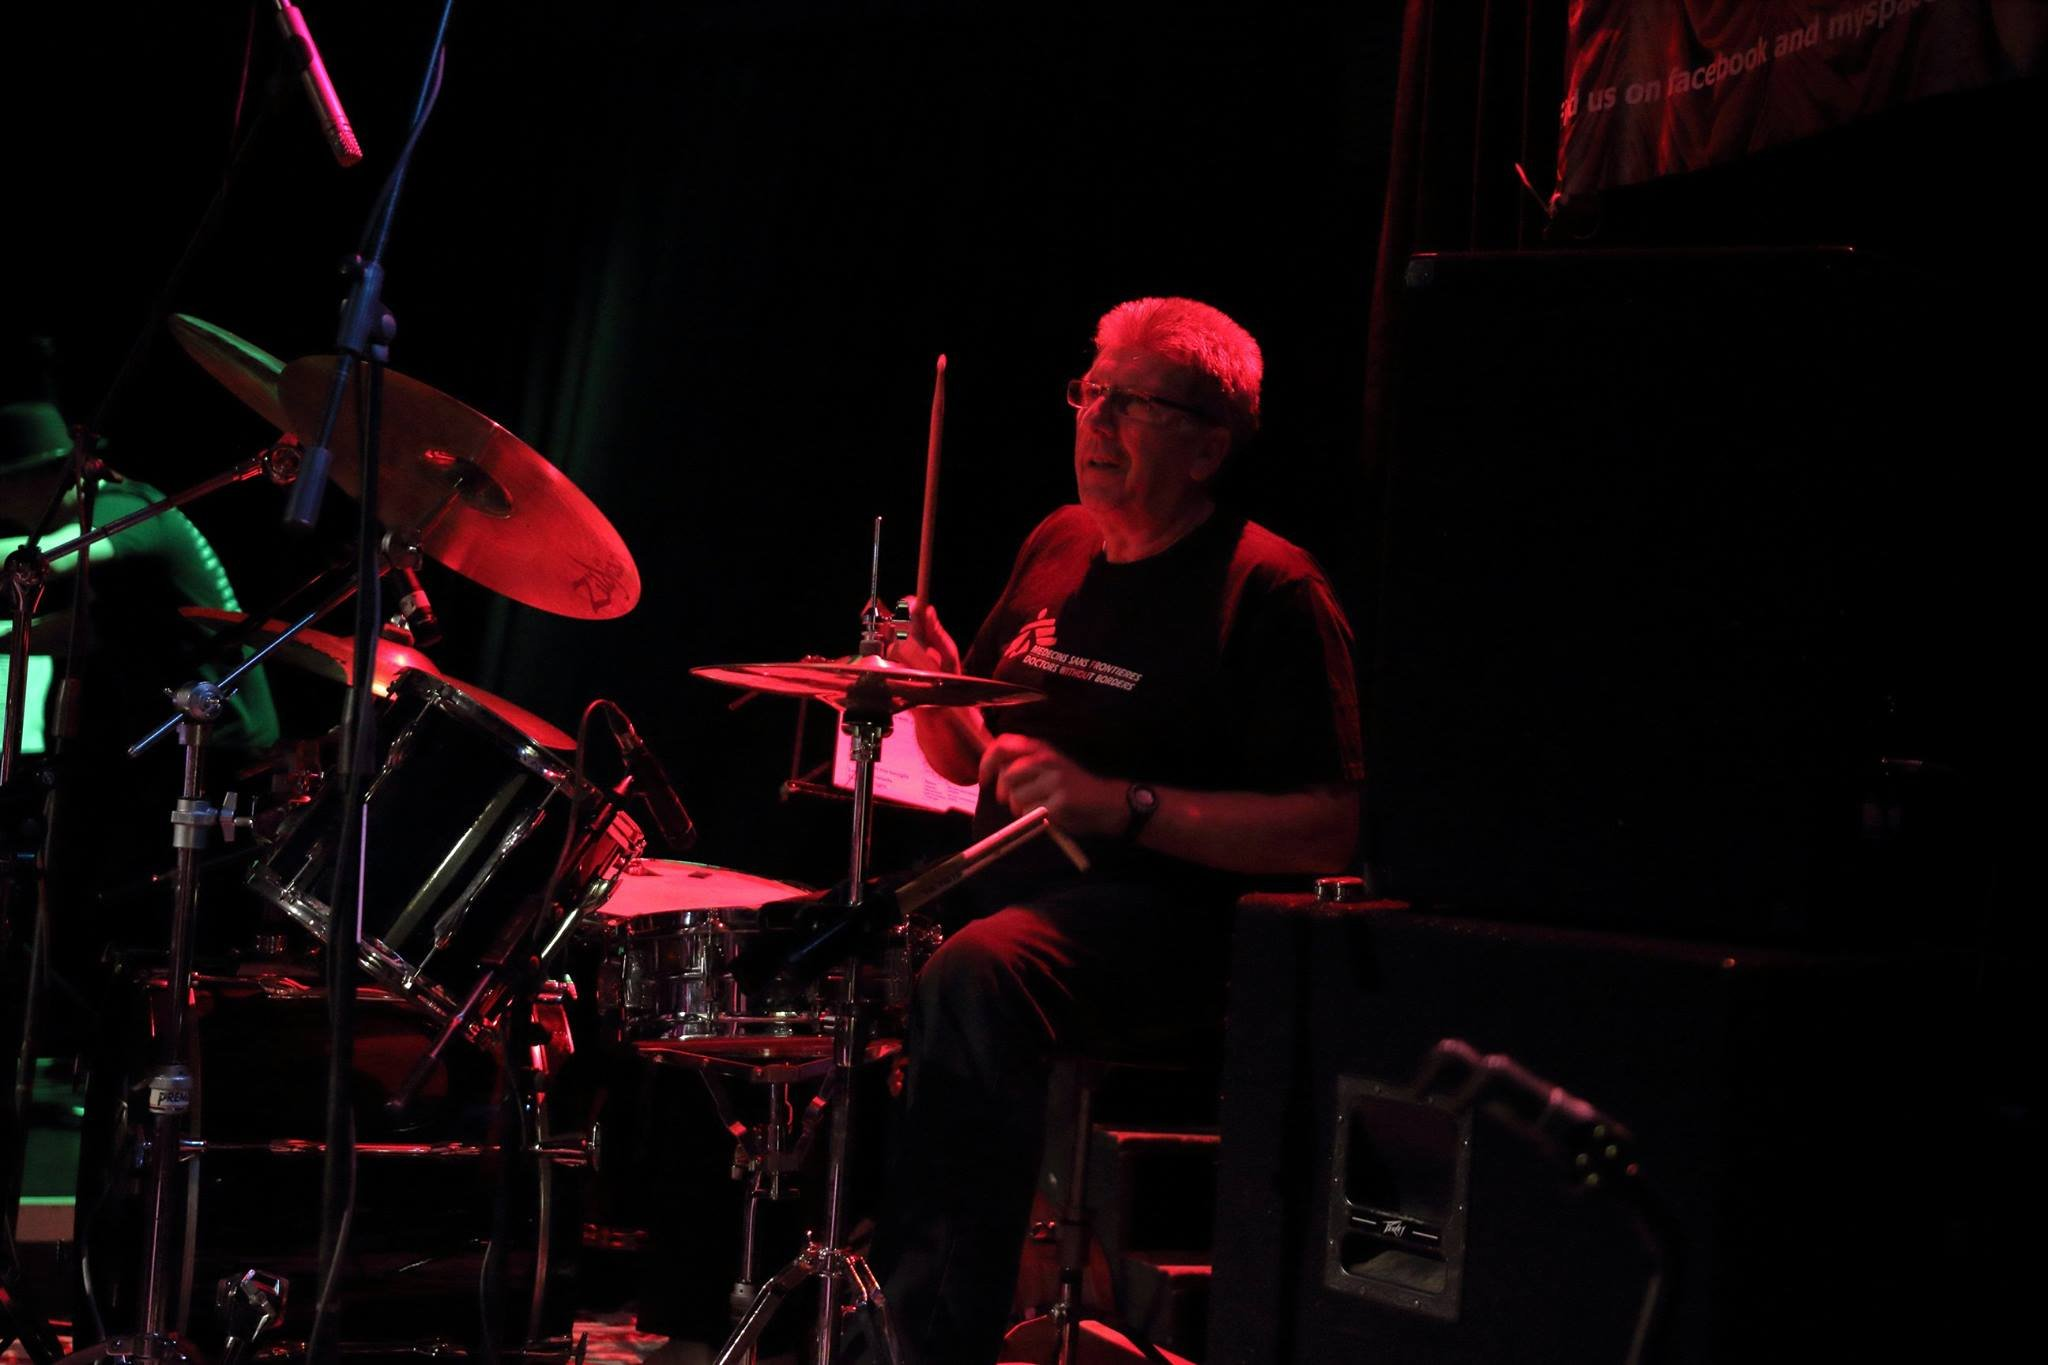 Bob Black manager and wizard, on Drums